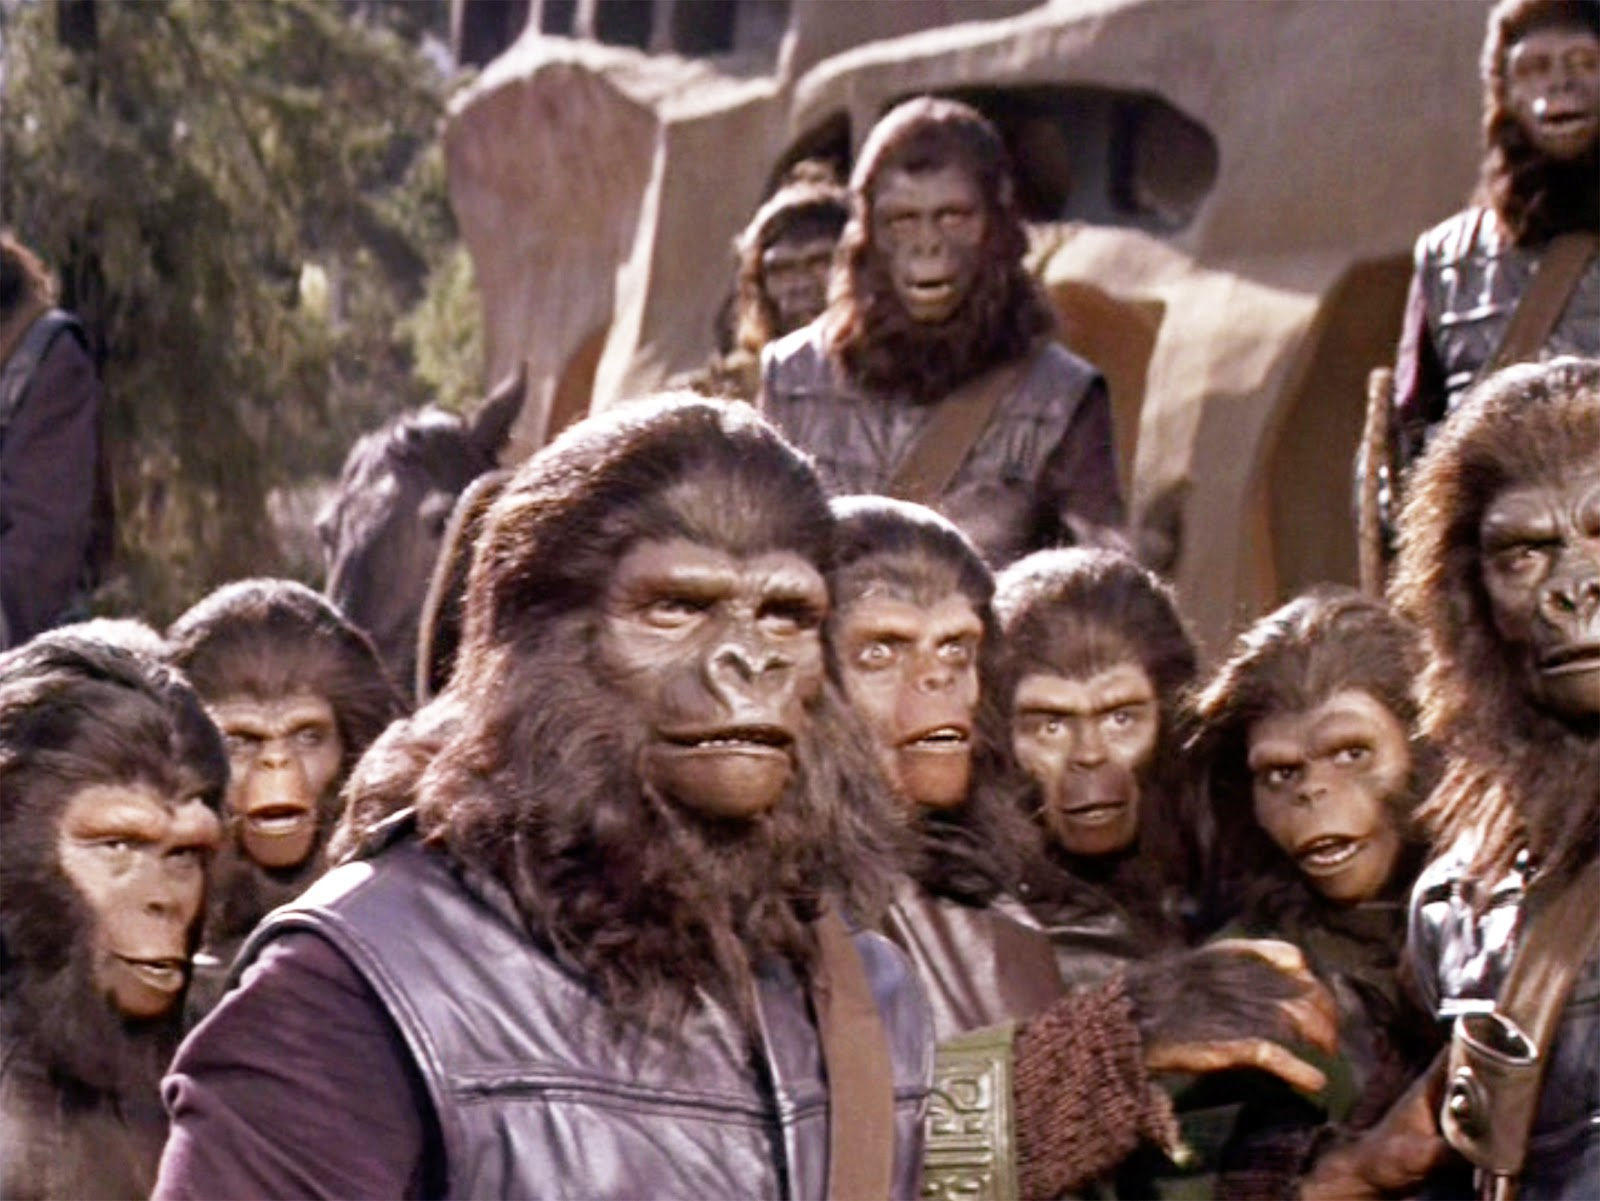 planet of the apes 1968 essays Notes about planet of the apes, 1968, directed by franklin j schaffner, with charlton heston, roddy mcdowall, kim hunter, available from turner classic movies.